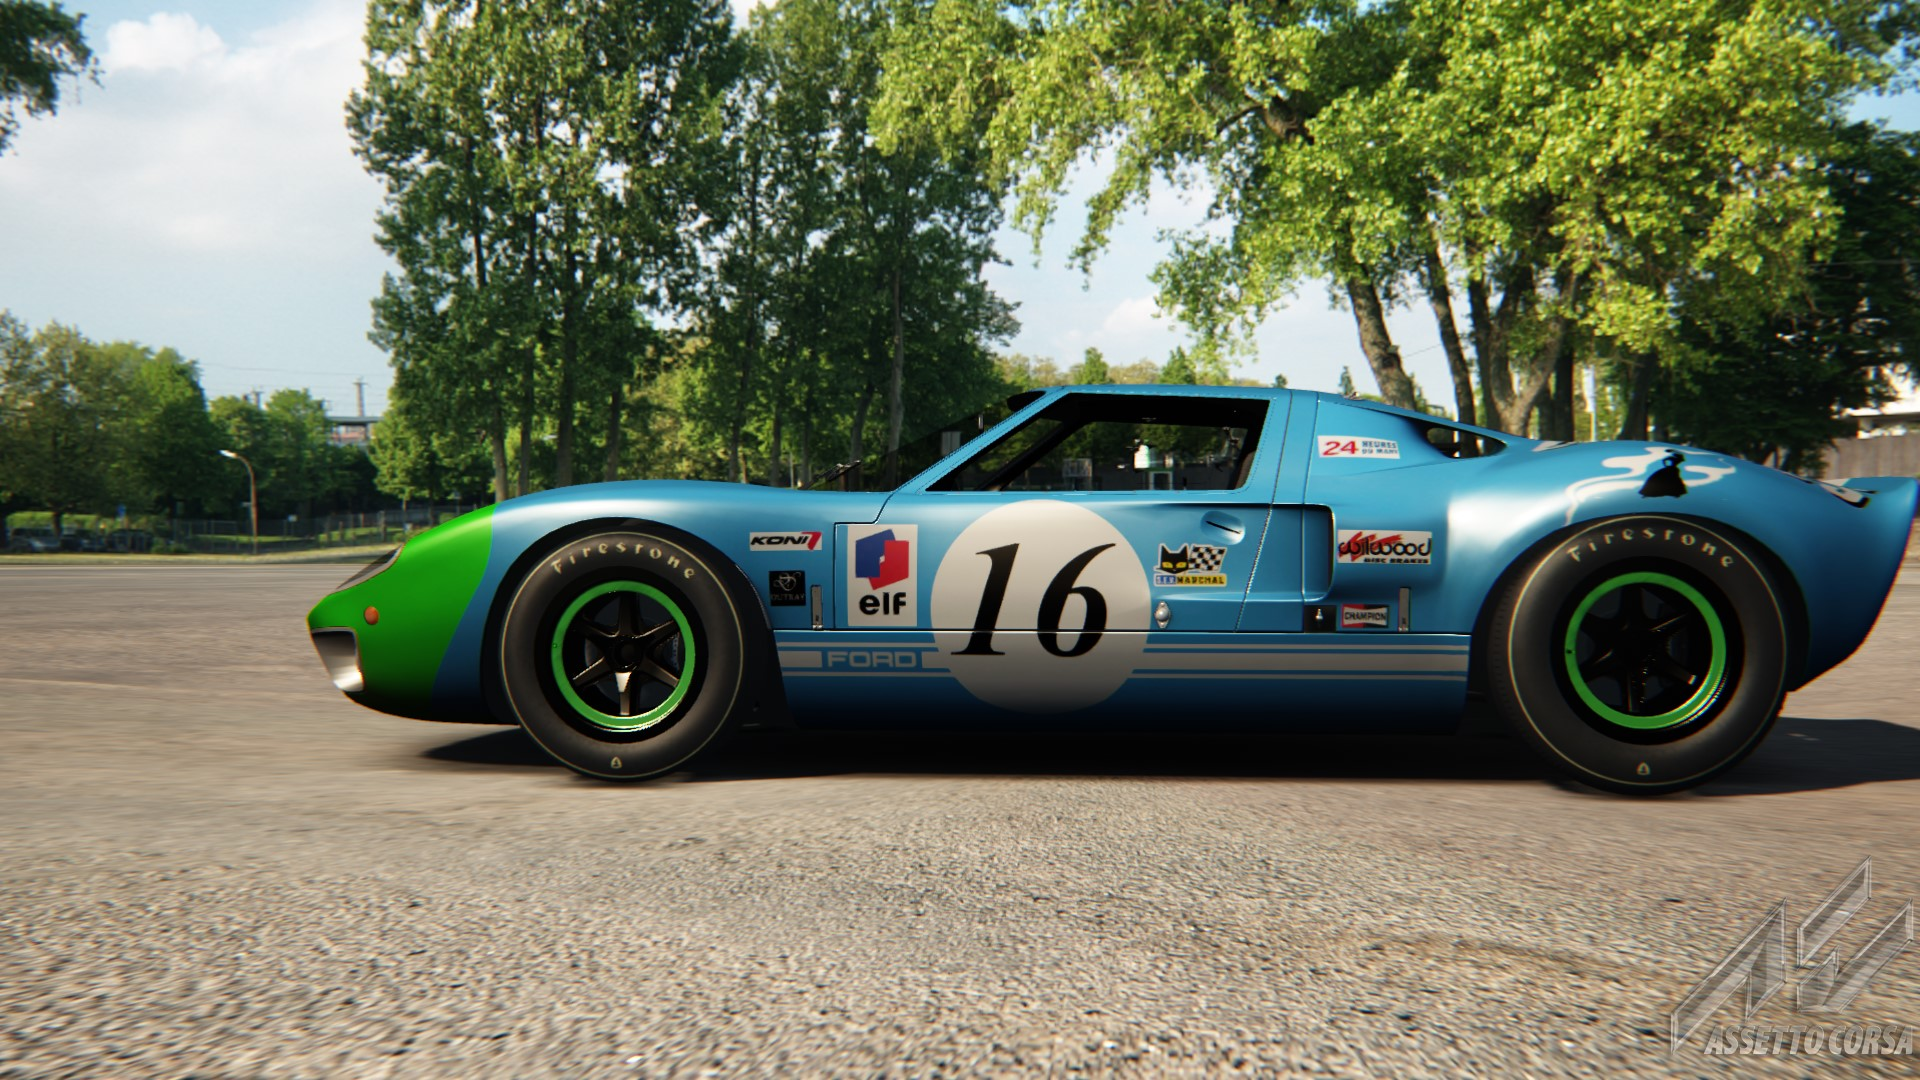 Showroom_ks_ford_gt40_7-10-2015-20-51-29.jpg